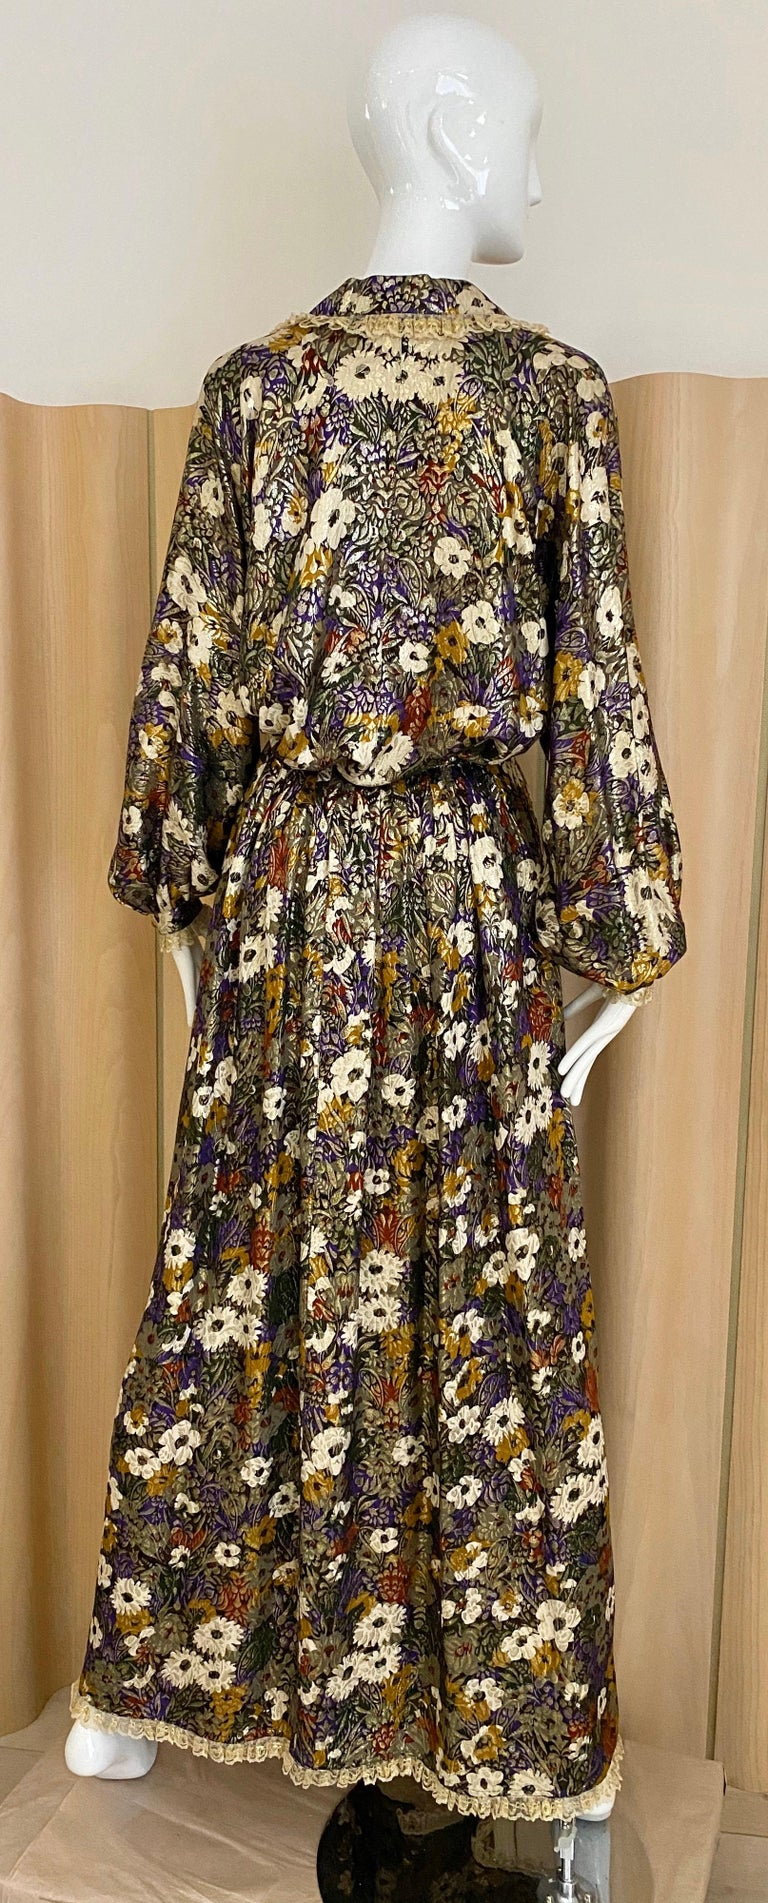 Geoffrey Beene Multi Color Floral Print Silk  Lamé Blouse Skirt  and pant  Set For Sale 3